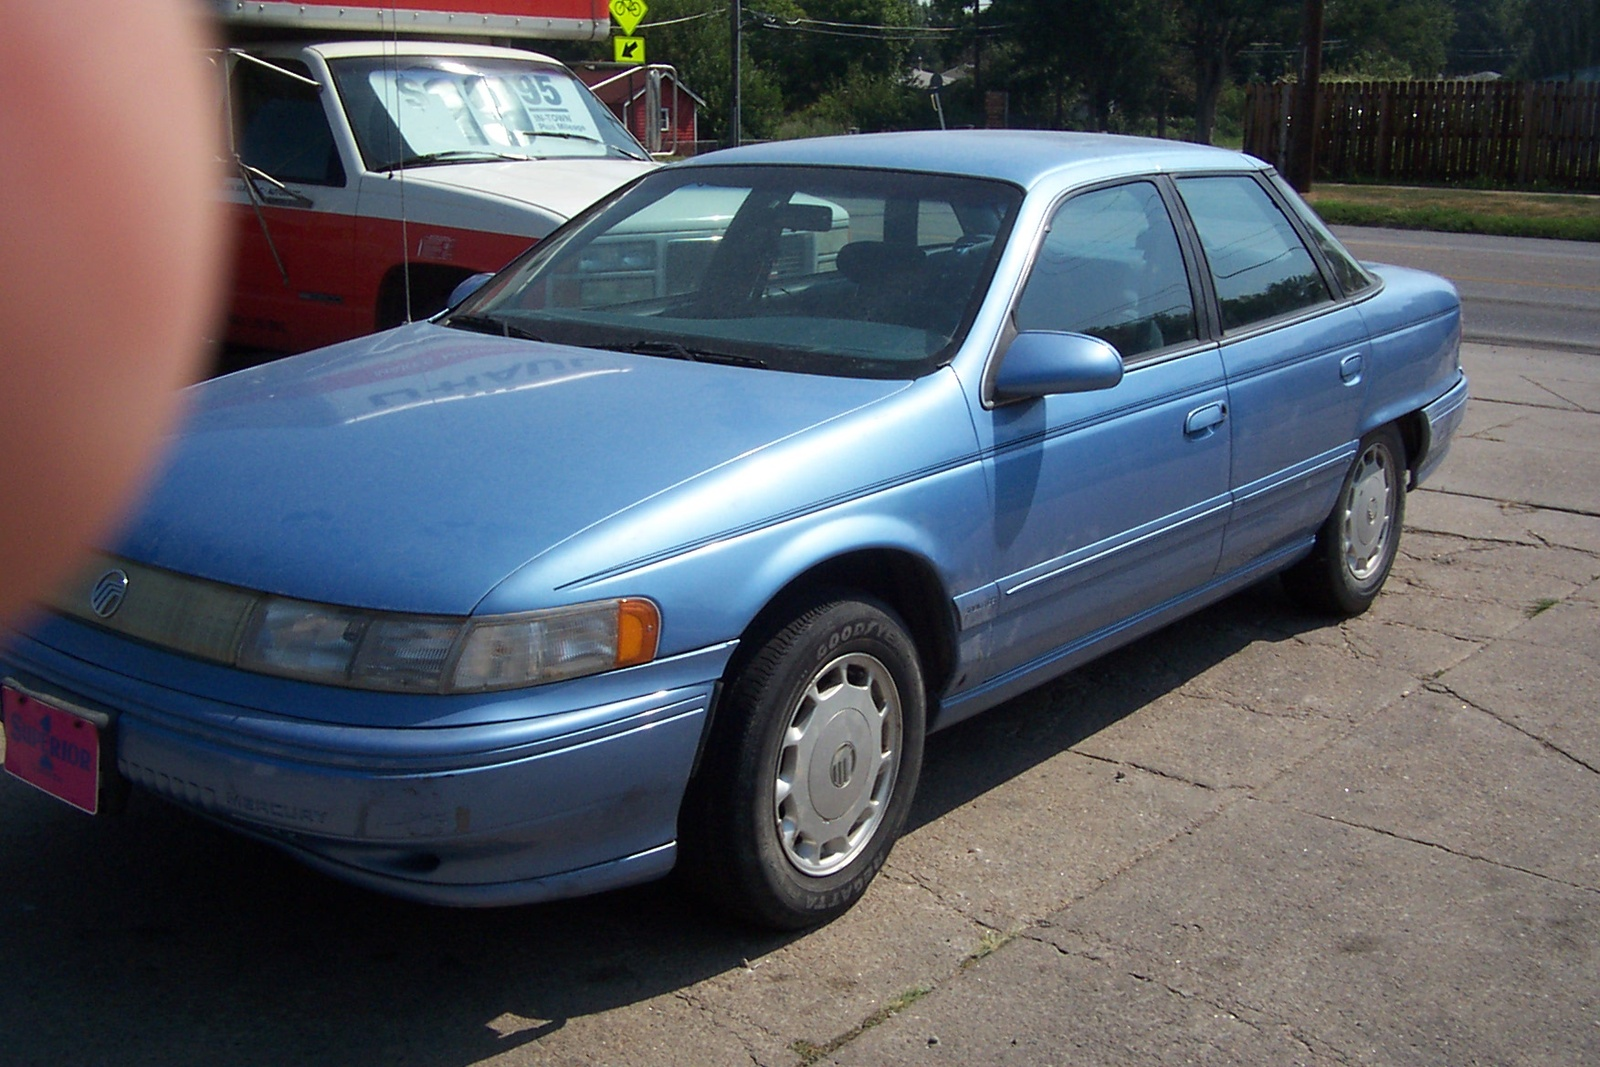 1996 Mercury Sable 4 Dr G Sedan picture